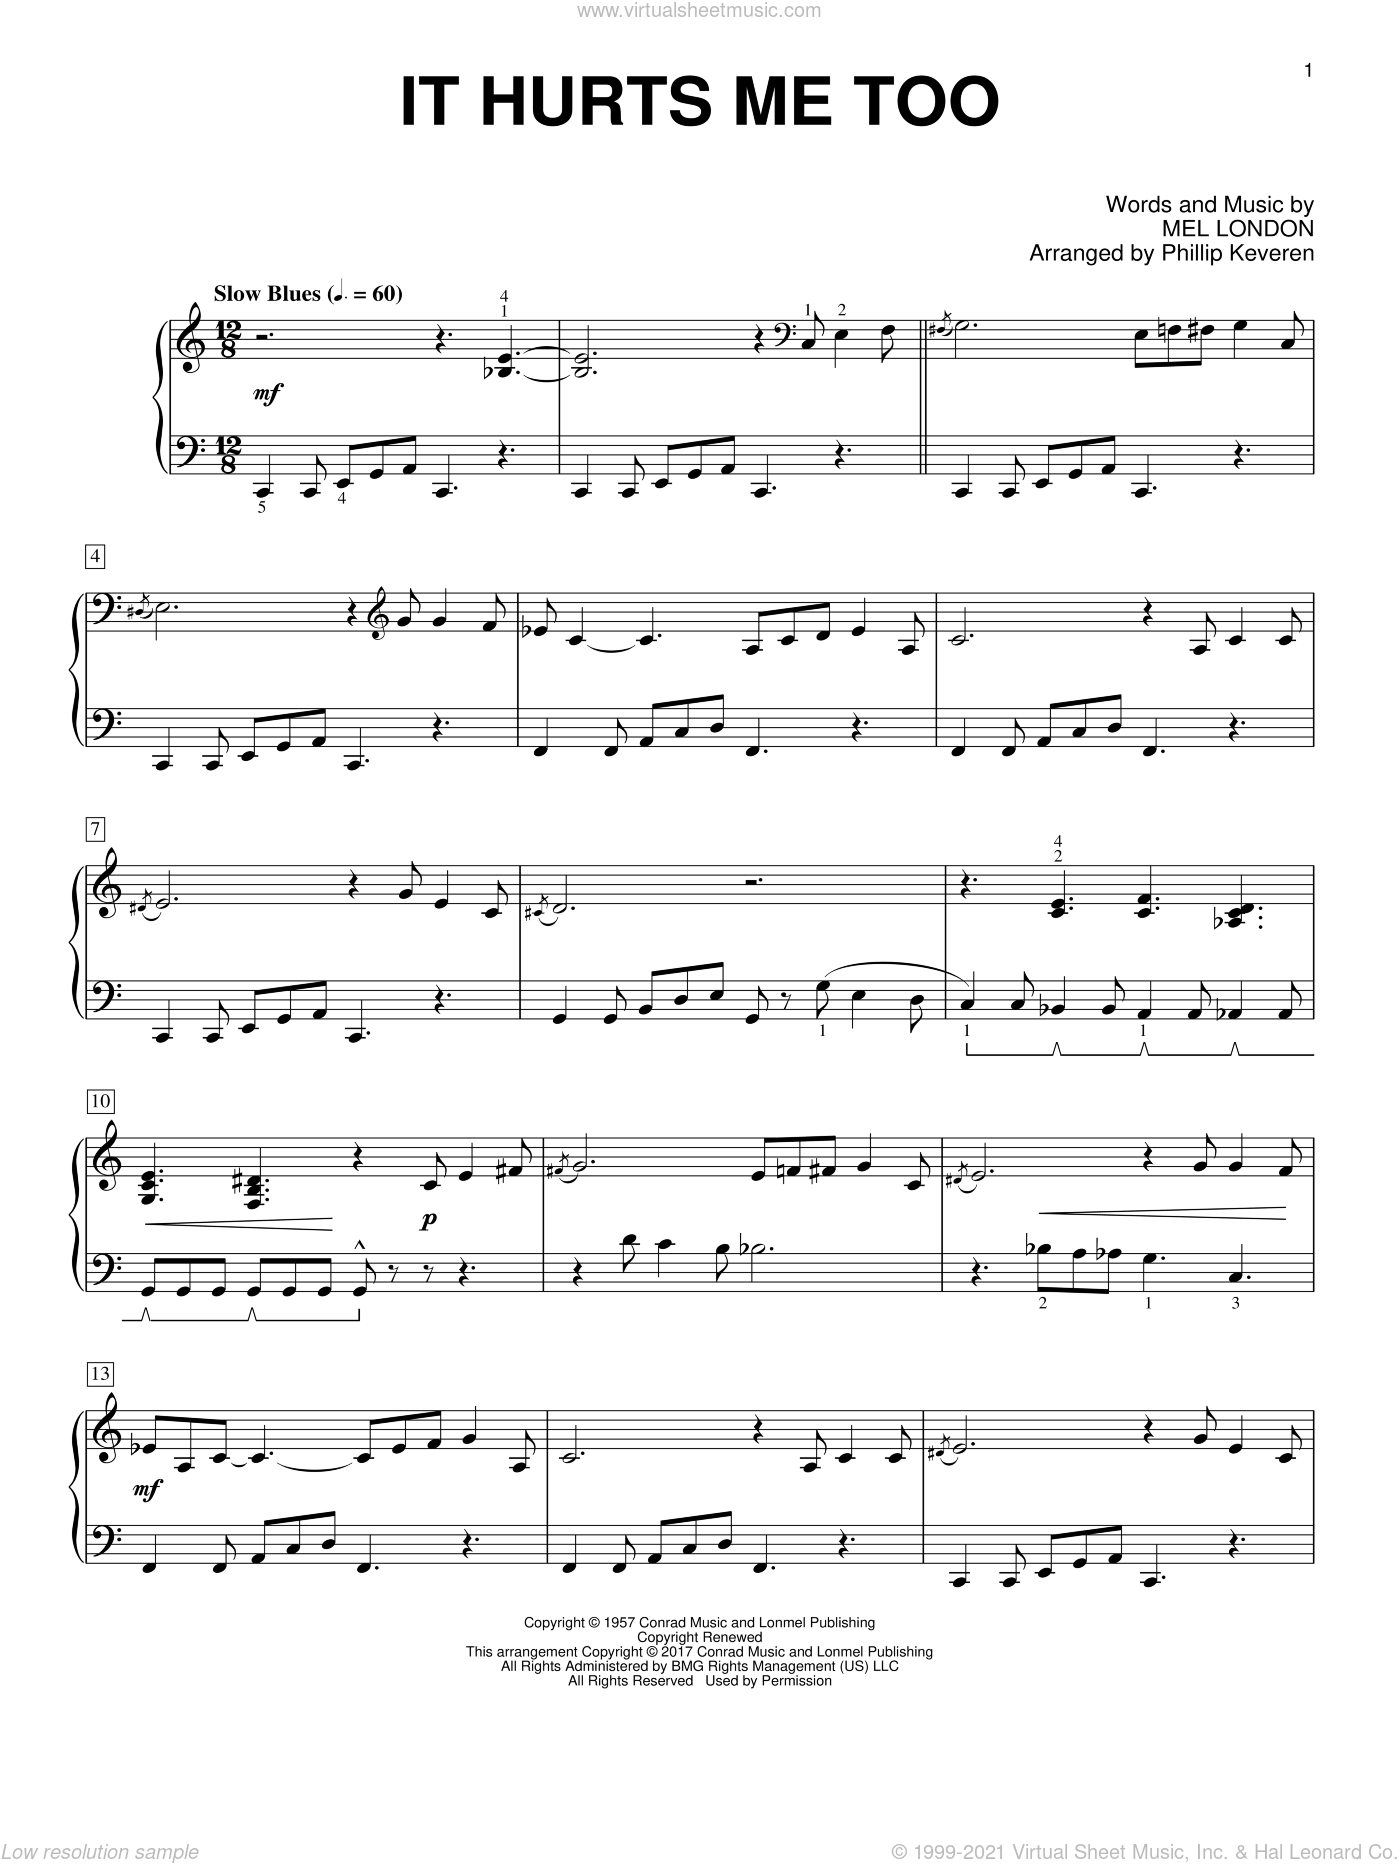 It Hurts Me Too sheet music for piano solo by Mel London, Phillip Keveren, Elmore James, Elvis Presley and Eric Clapton, intermediate. Score Image Preview.